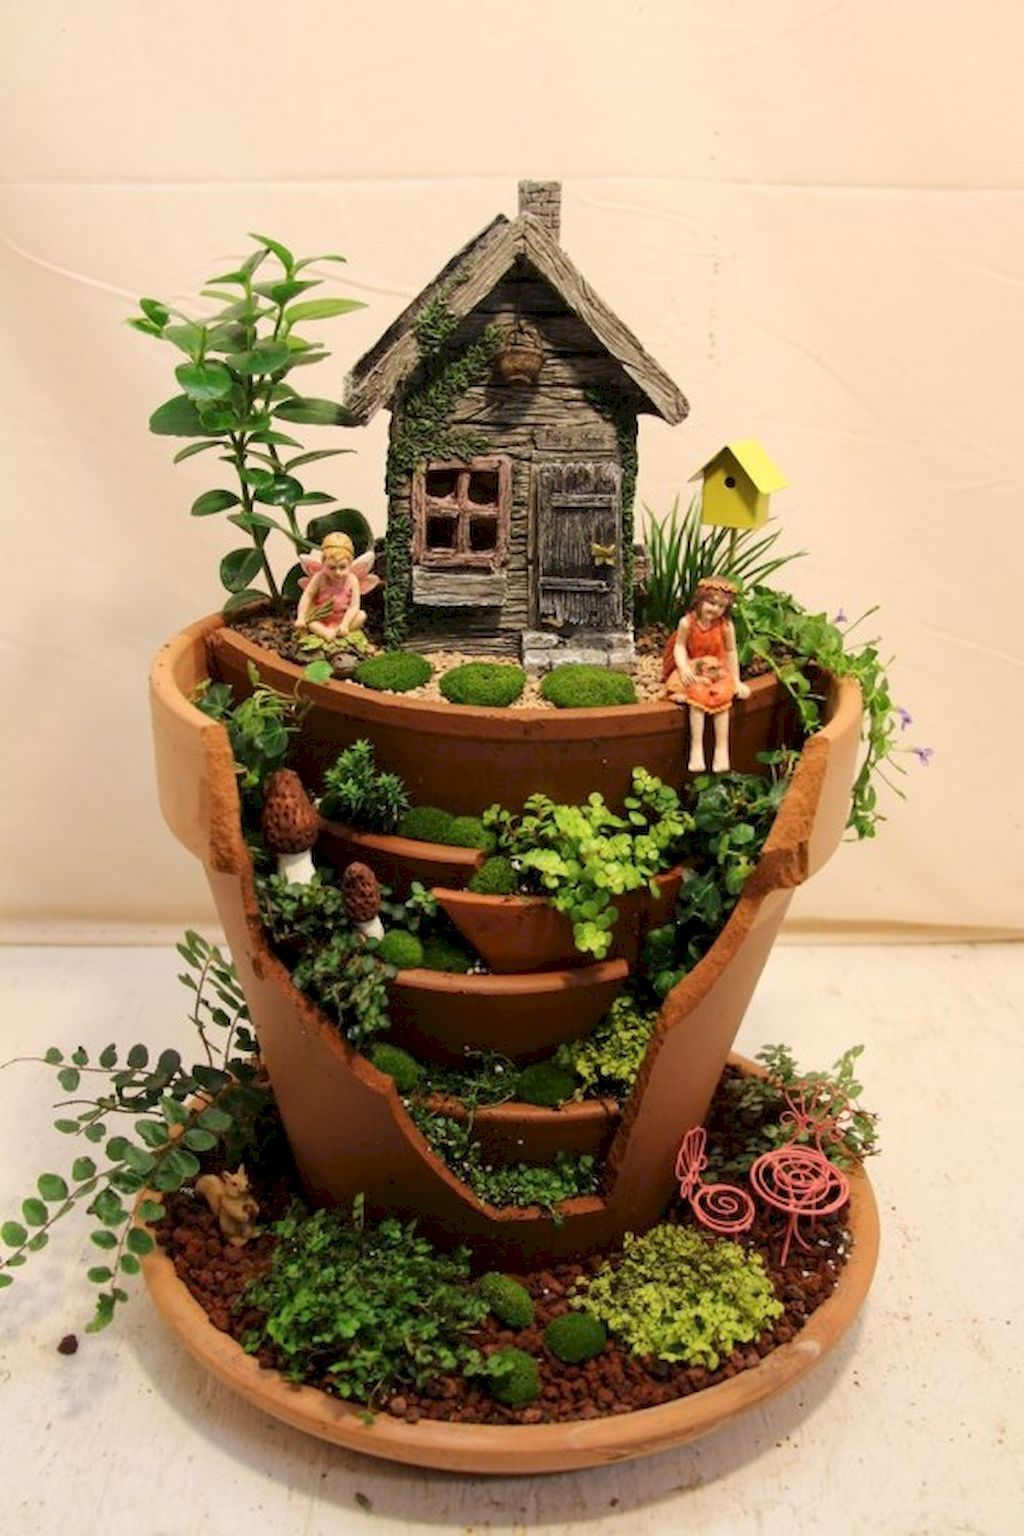 Fairy gardens are miniature landscapes with tiny